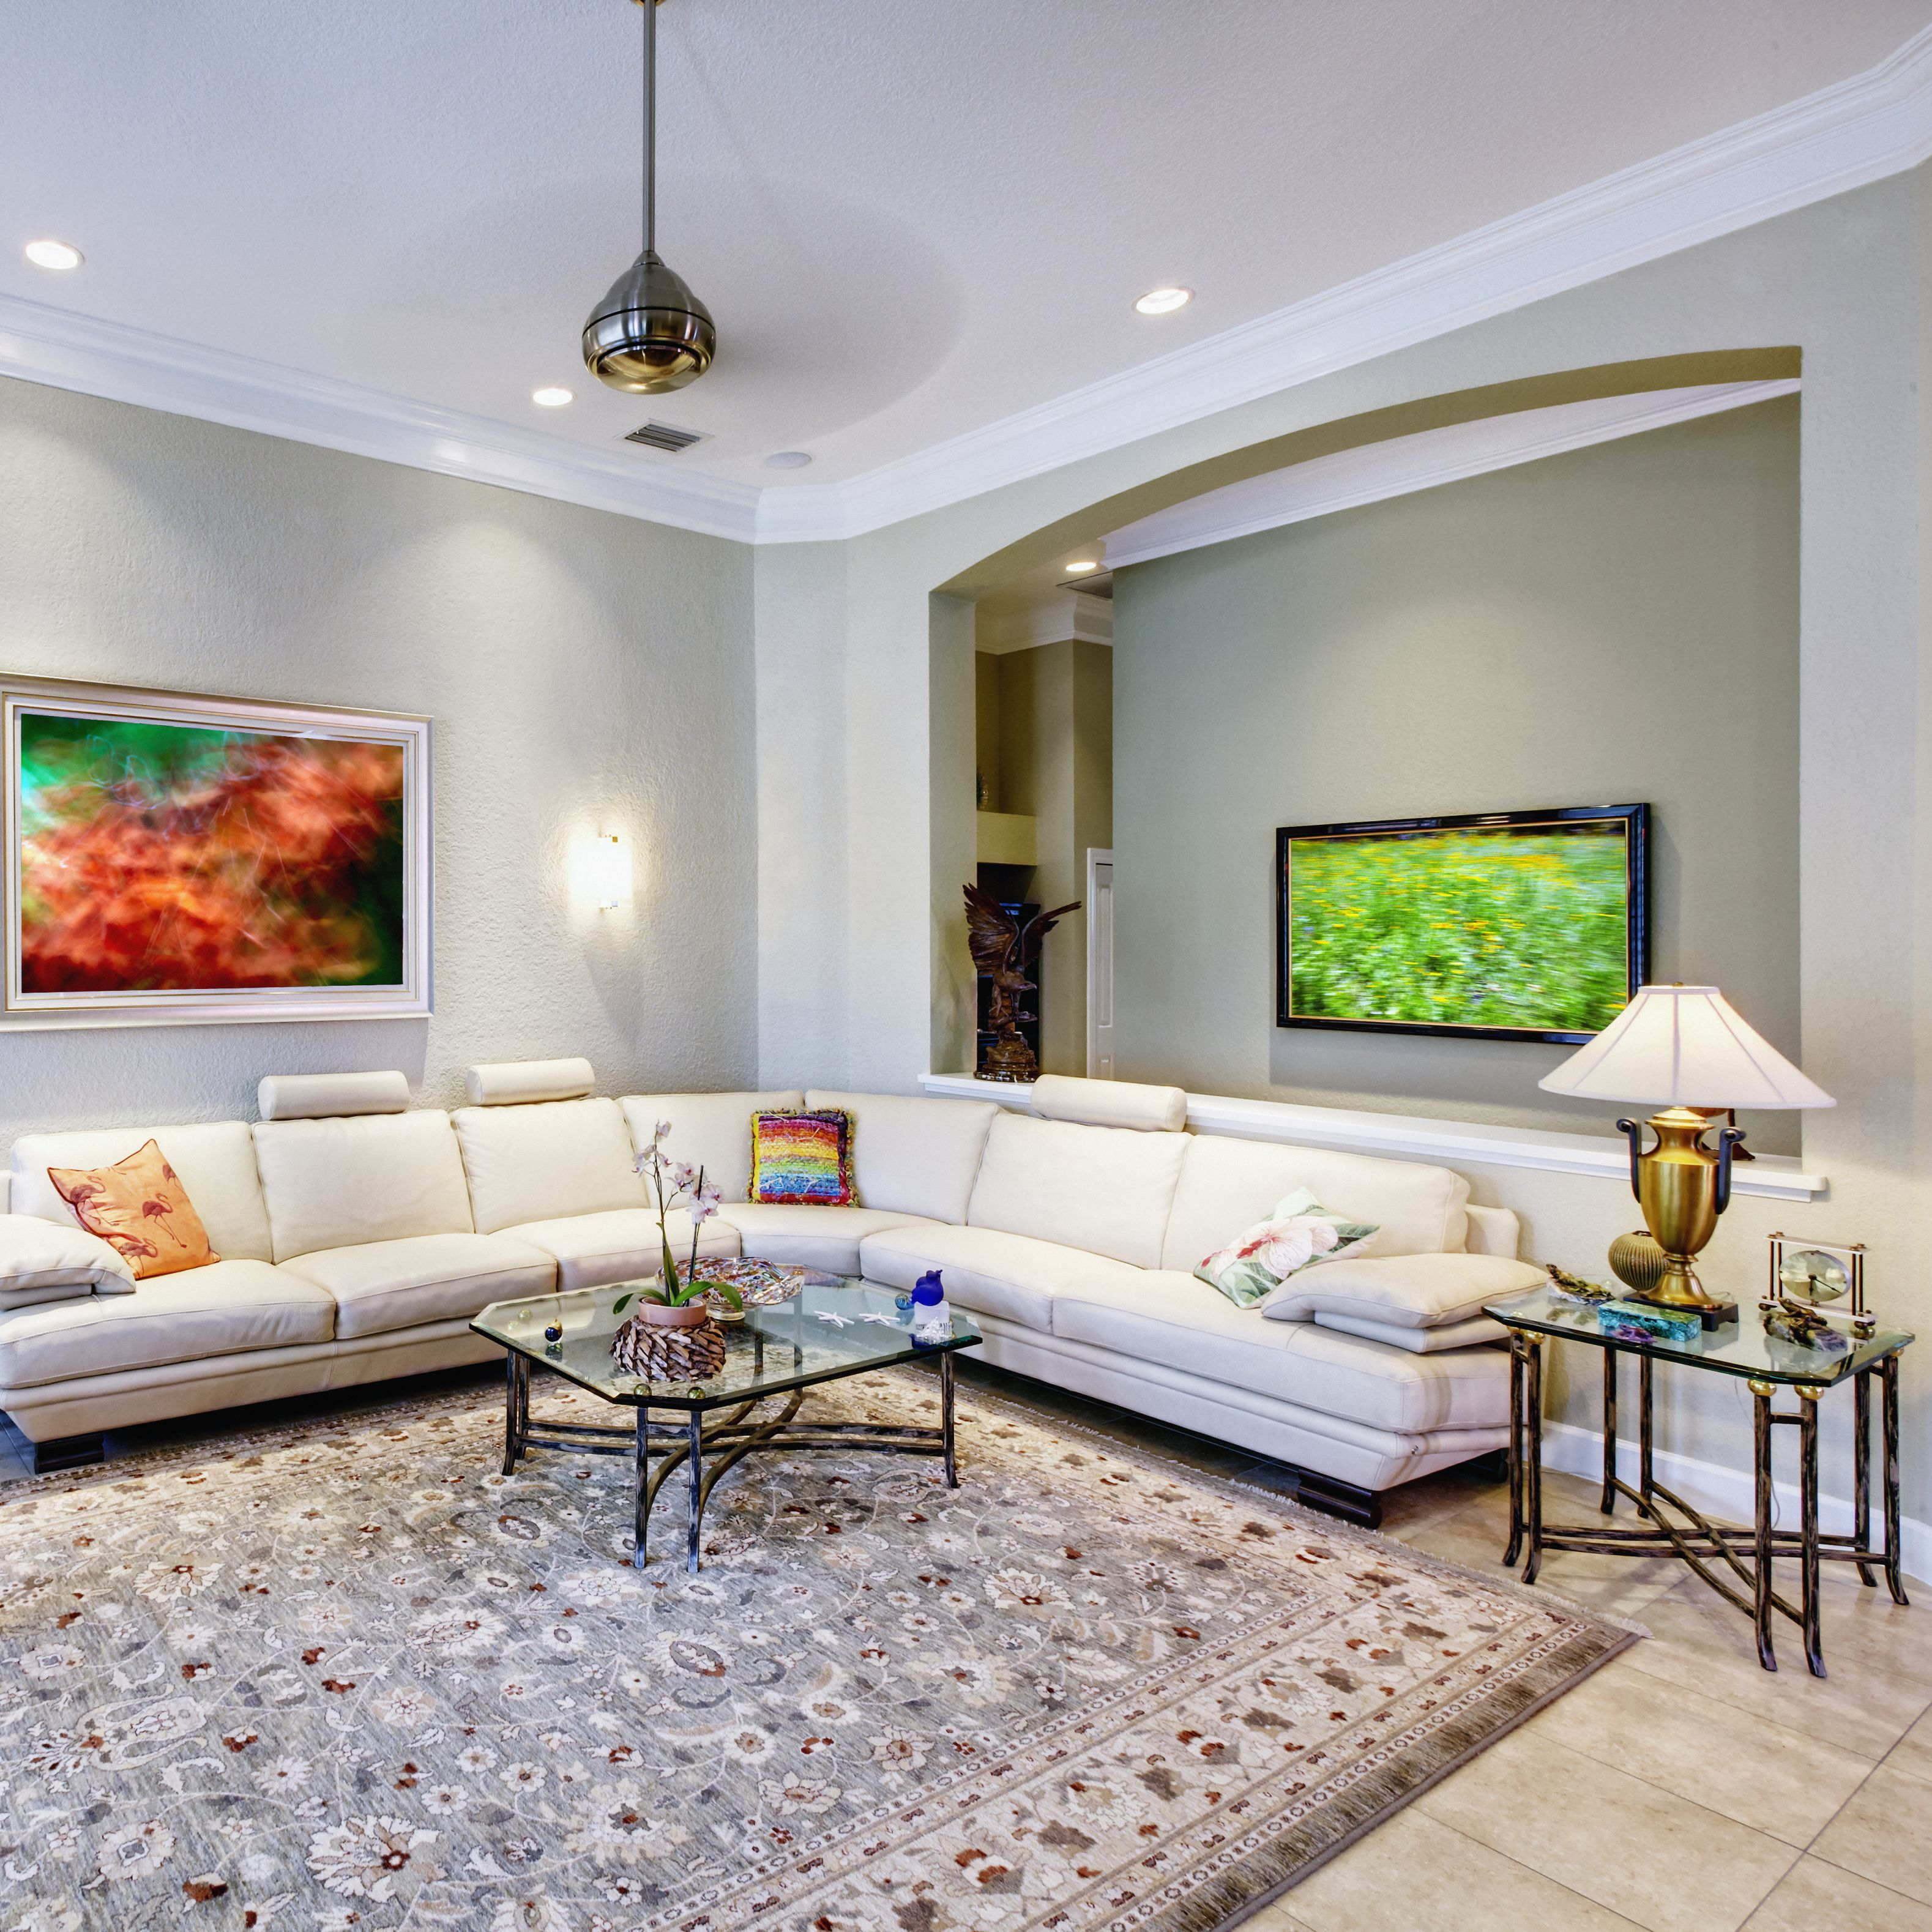 How To Decorate A Room With No Windows Living Room Without Windows Small Room Design Room Design